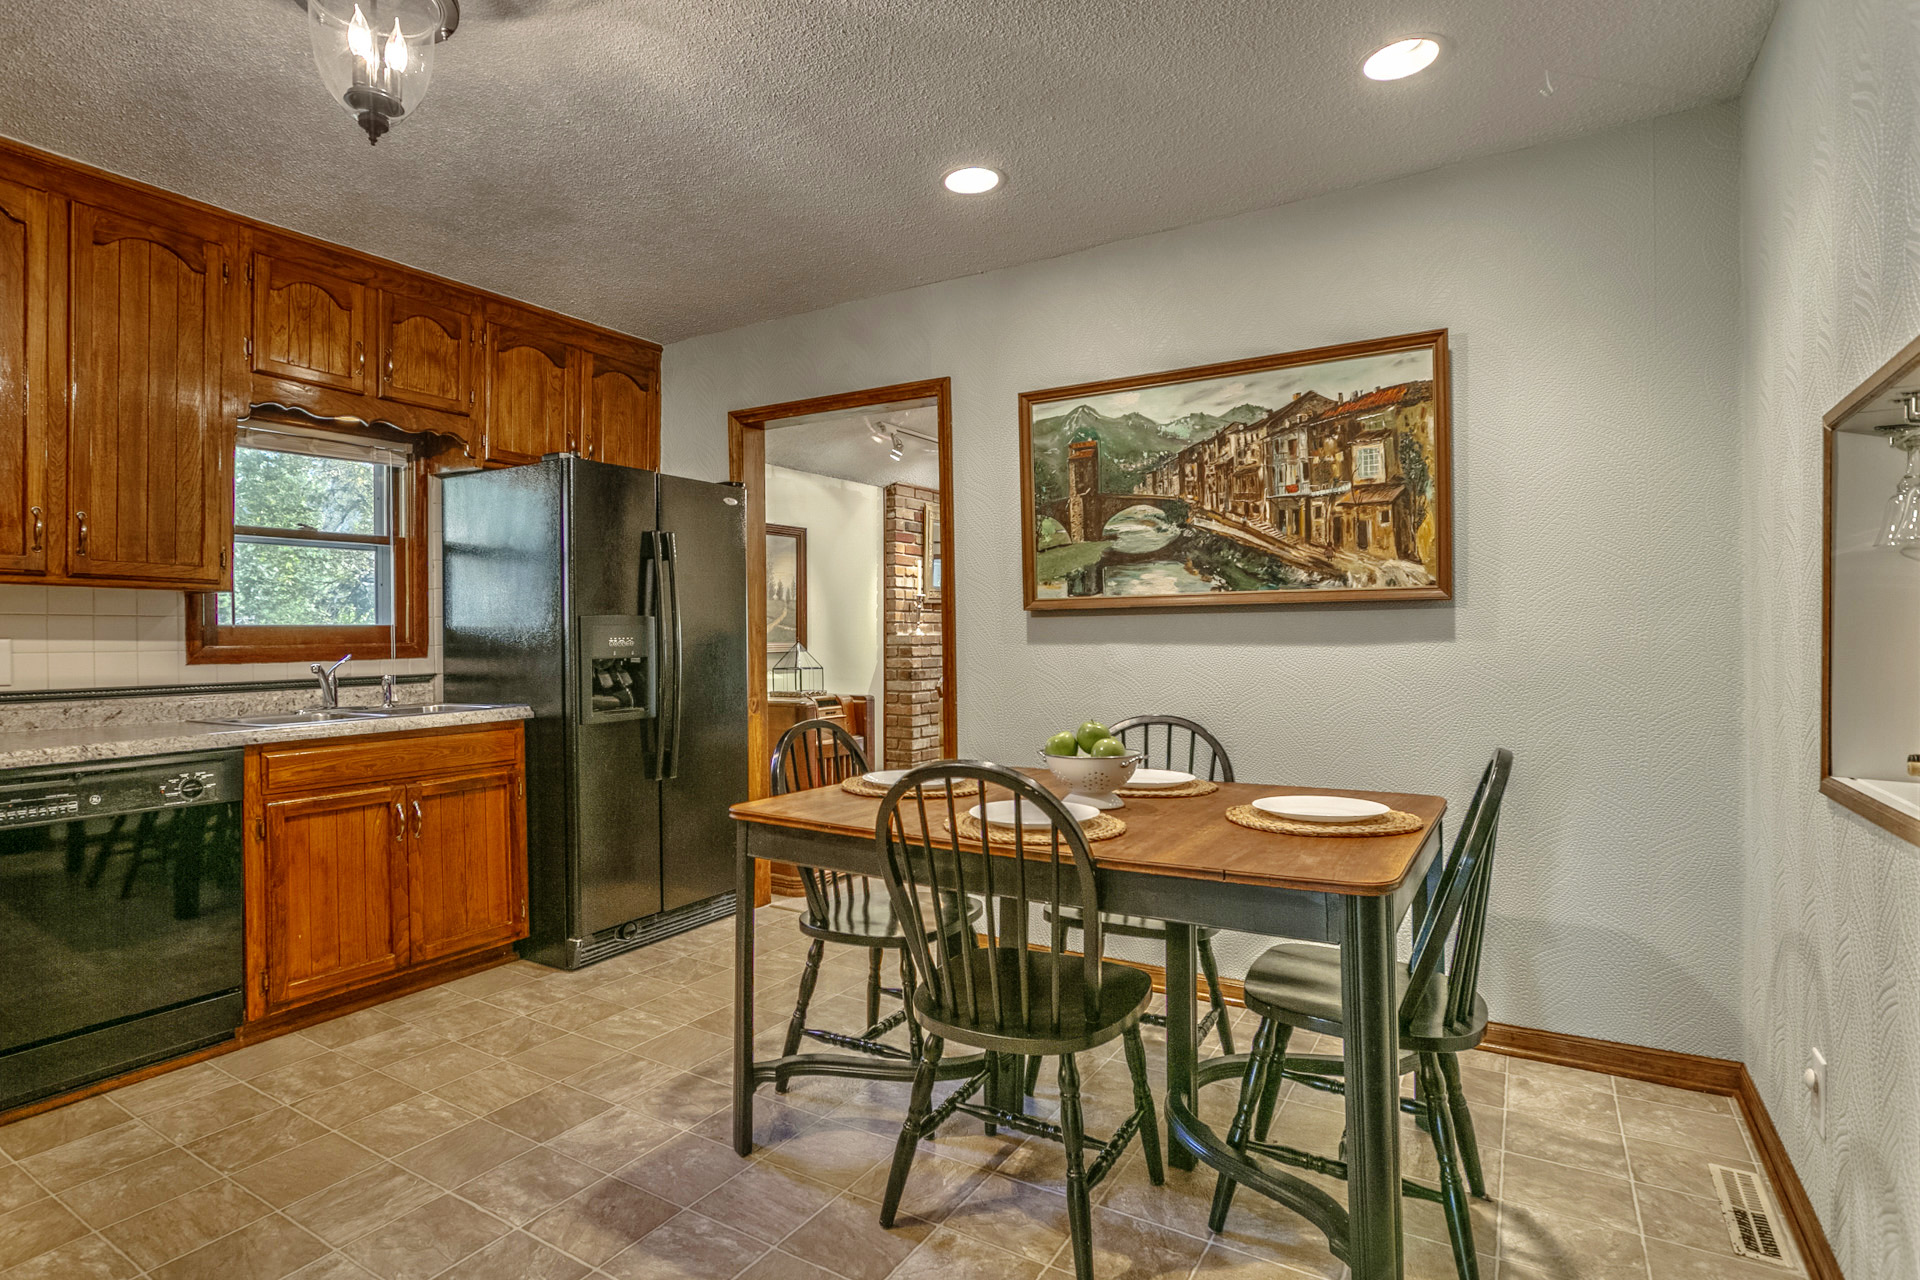 Stage an outdated kitchen to sell your home fast